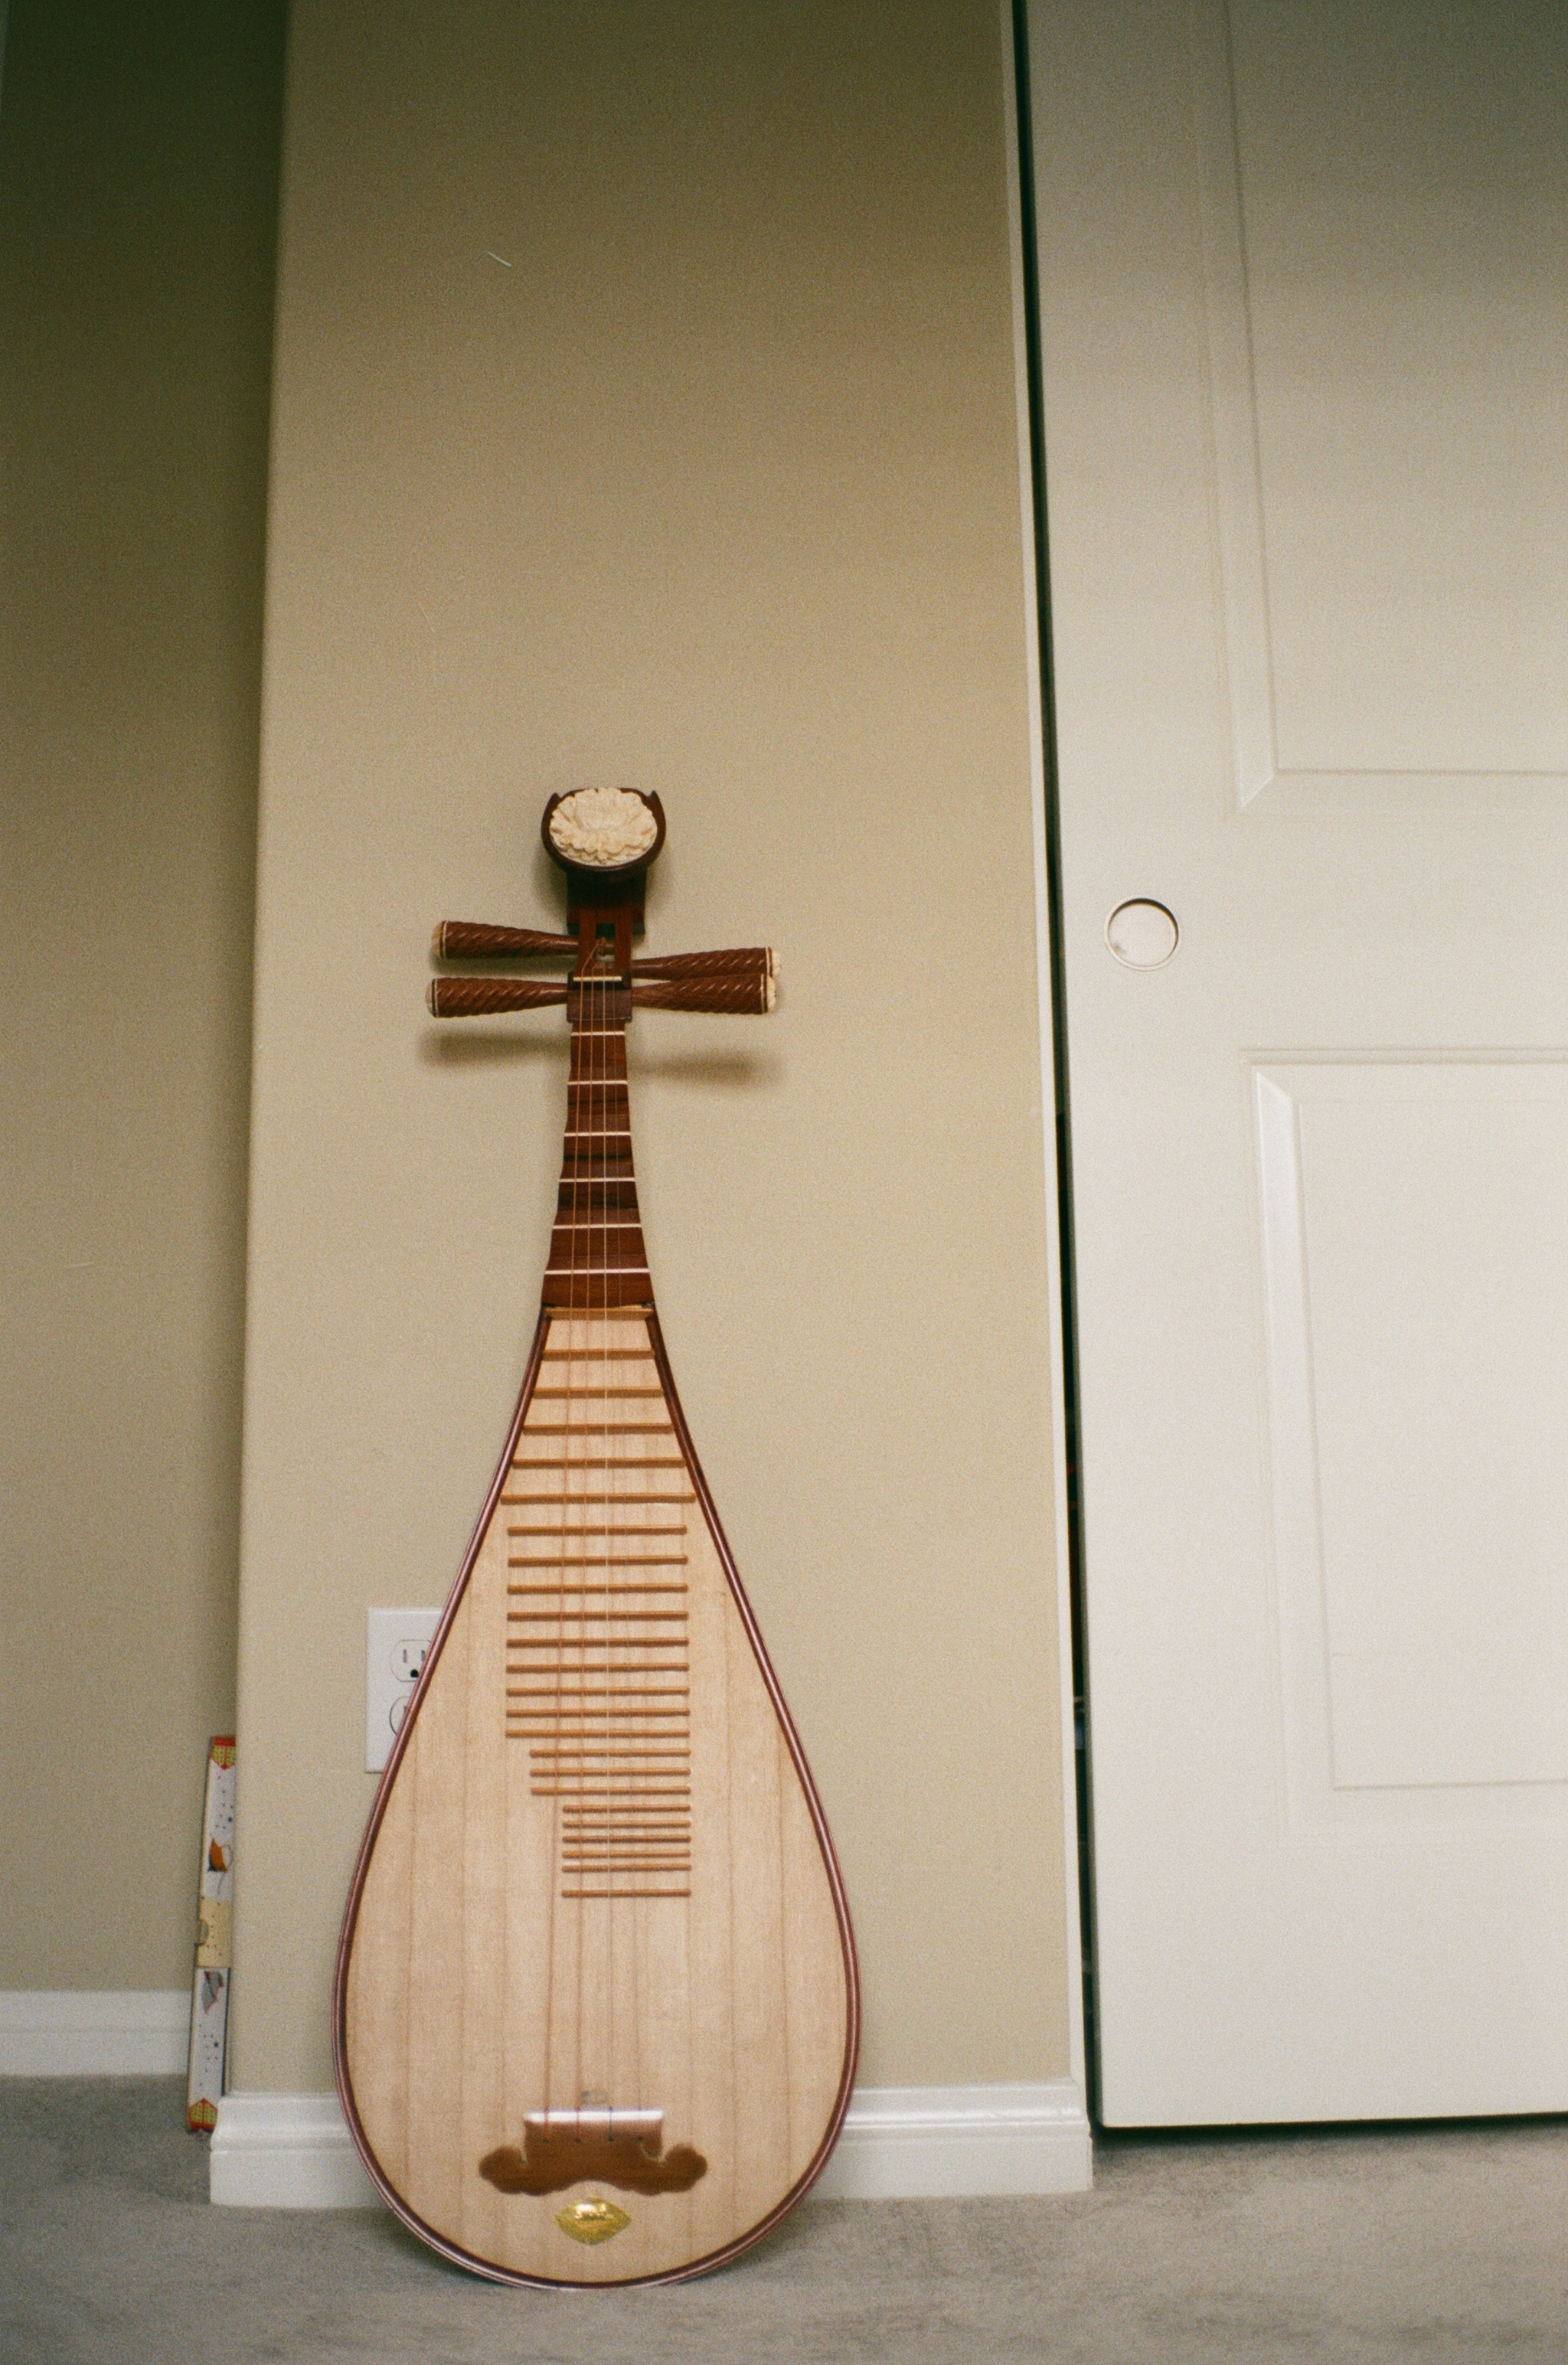 For the unfamiliar, a pipa is a Chinese lute. I played this for a few years in high school until periodic hand injuries pretty much made it impossible to practice while playing basketball.